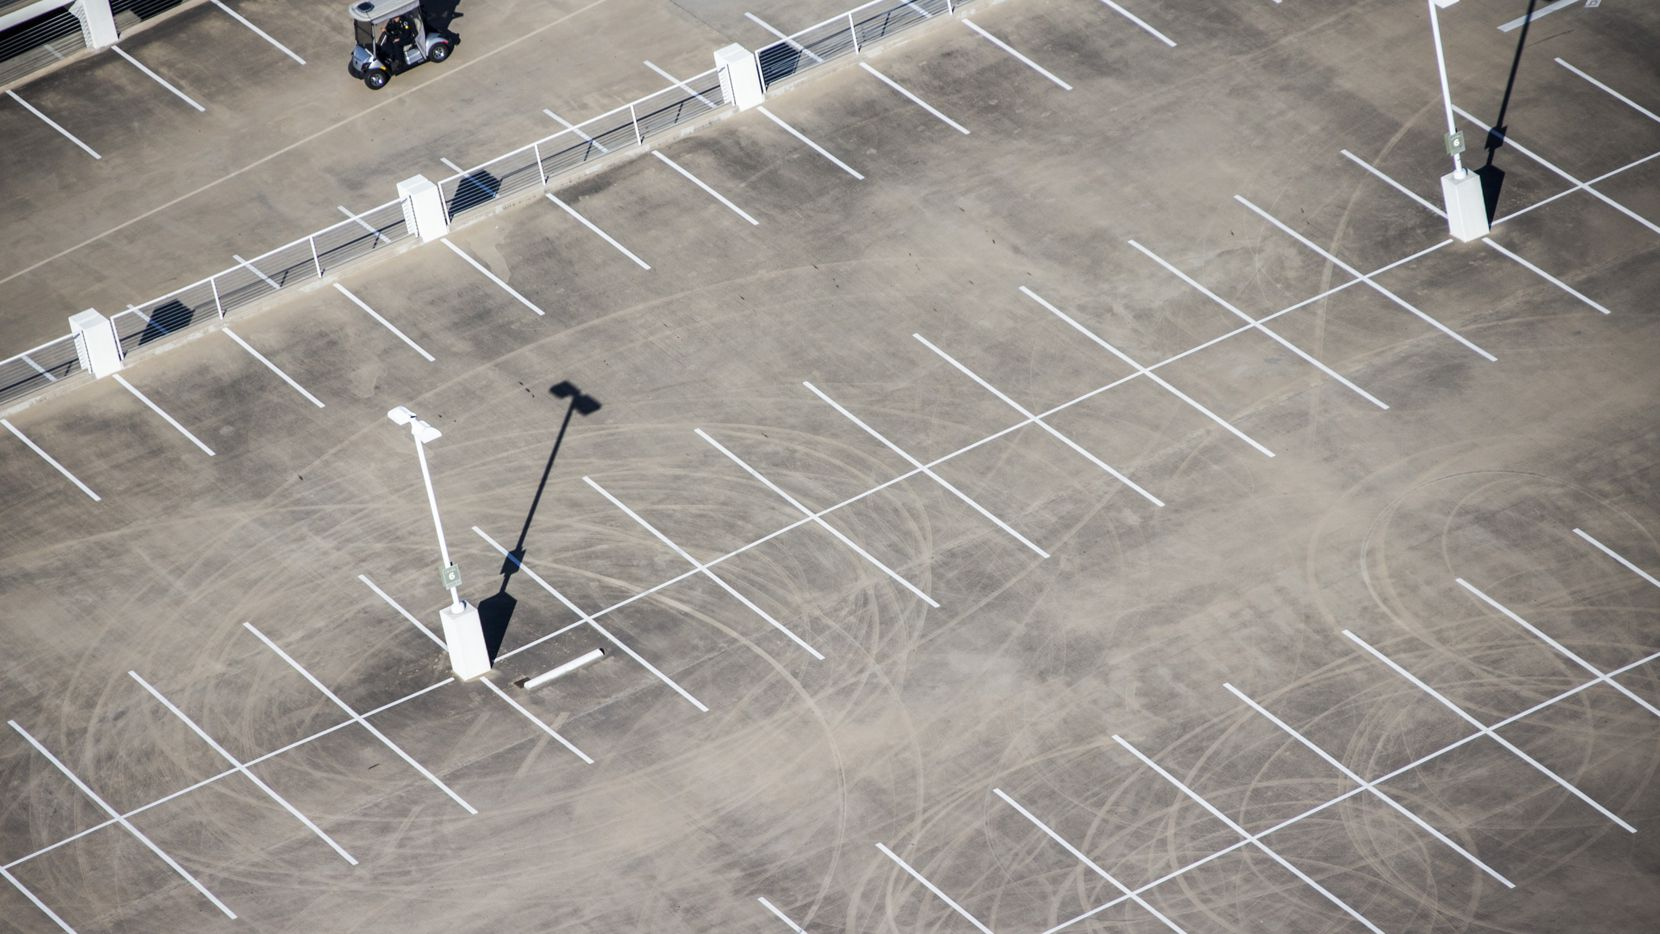 A security guard drives a golf cart past tire marks showing evidence of stunt driving on the top level of a parking garage where two Chinese nationals were struck by a vehicle in March 2019 on the northwest side of NorthPark Center in Dallas.